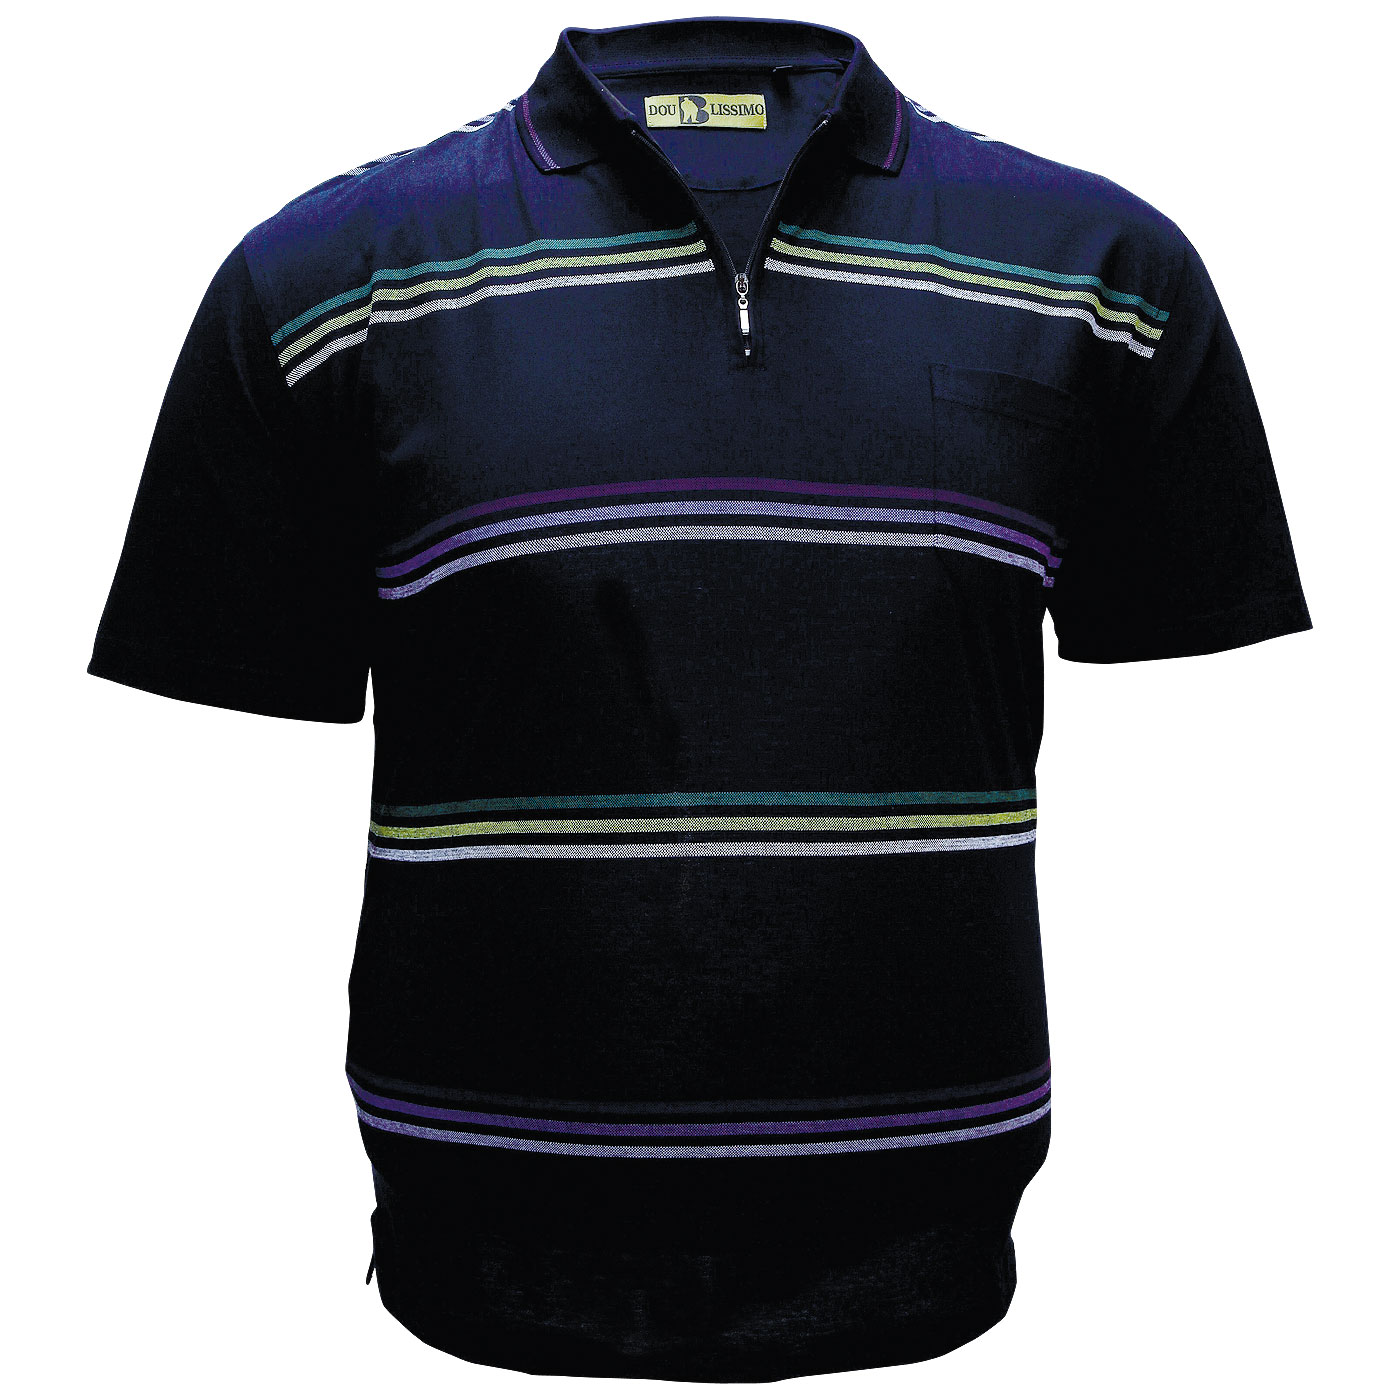 Big size shirt or large size polo shirt, what to choose?